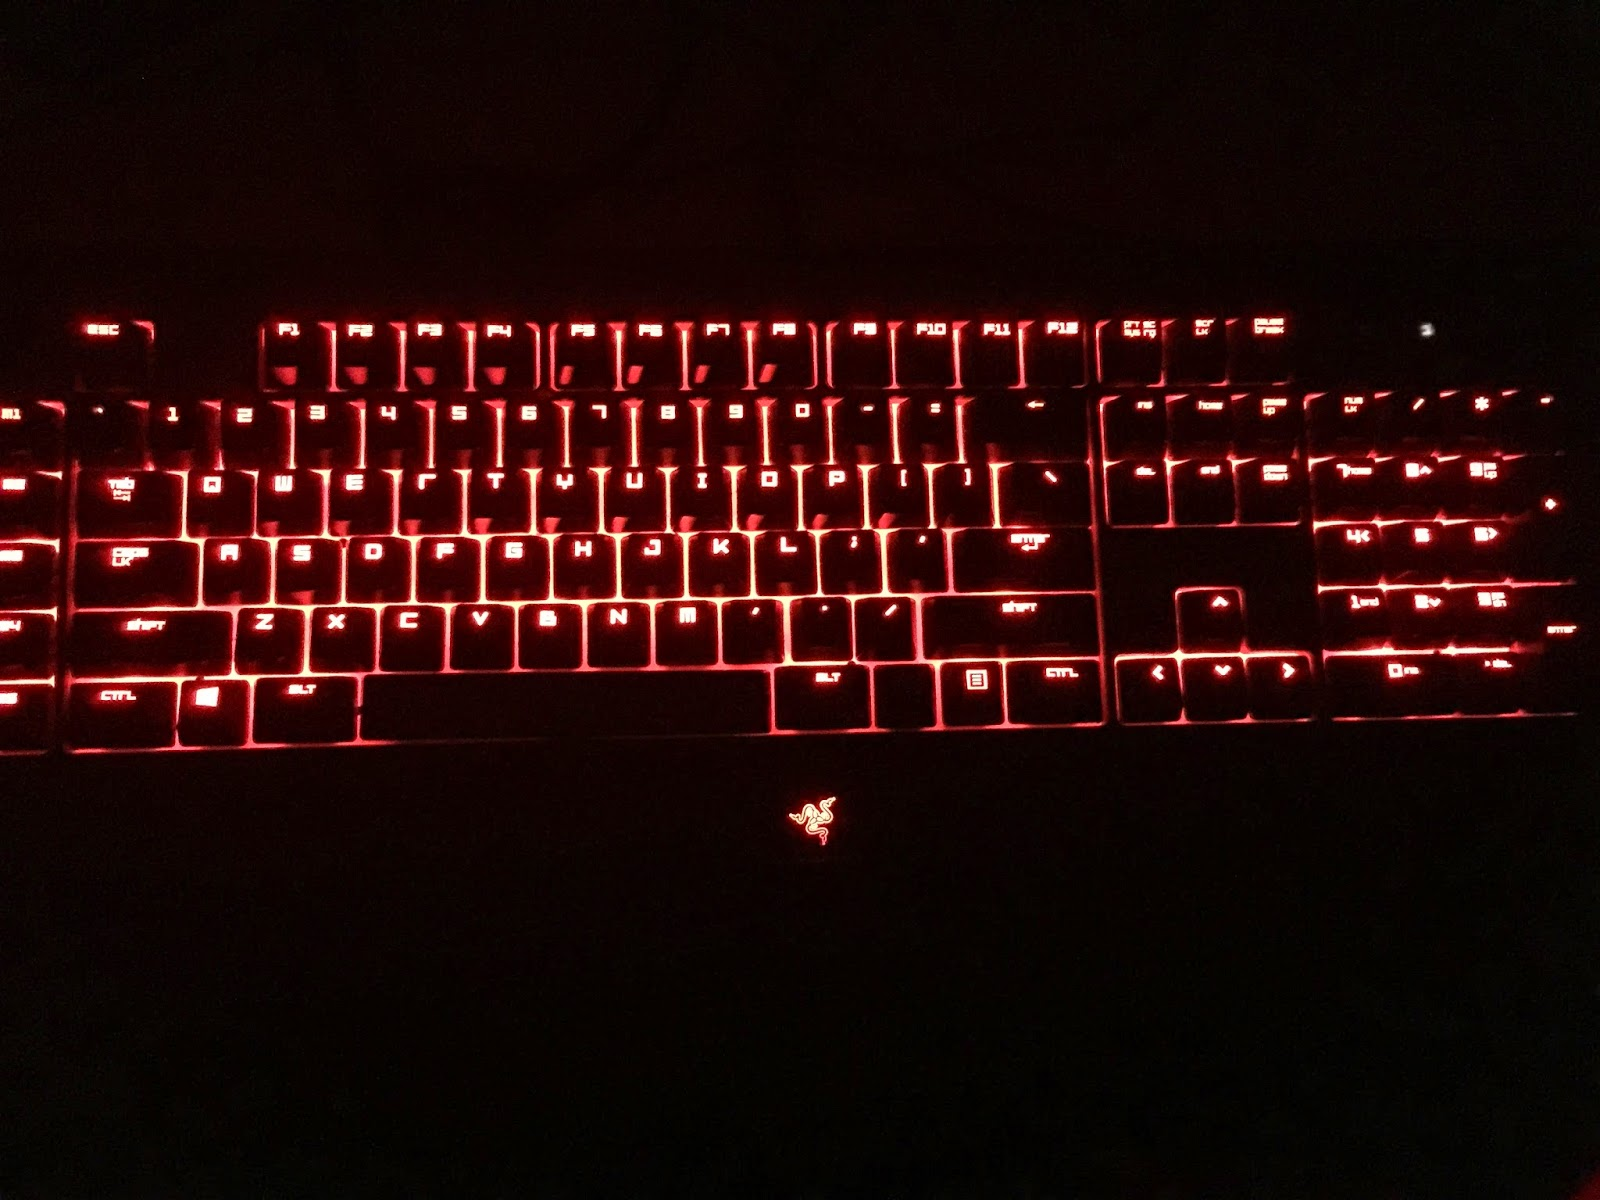 As you can see if you set the lighting to static the keyboard simply stays on the color you choose.  sc 1 st  Razer Blackwidow Chroma Keyboard & Razer Blackwidow Chroma Keyboard: Static and Spectrum Cycling